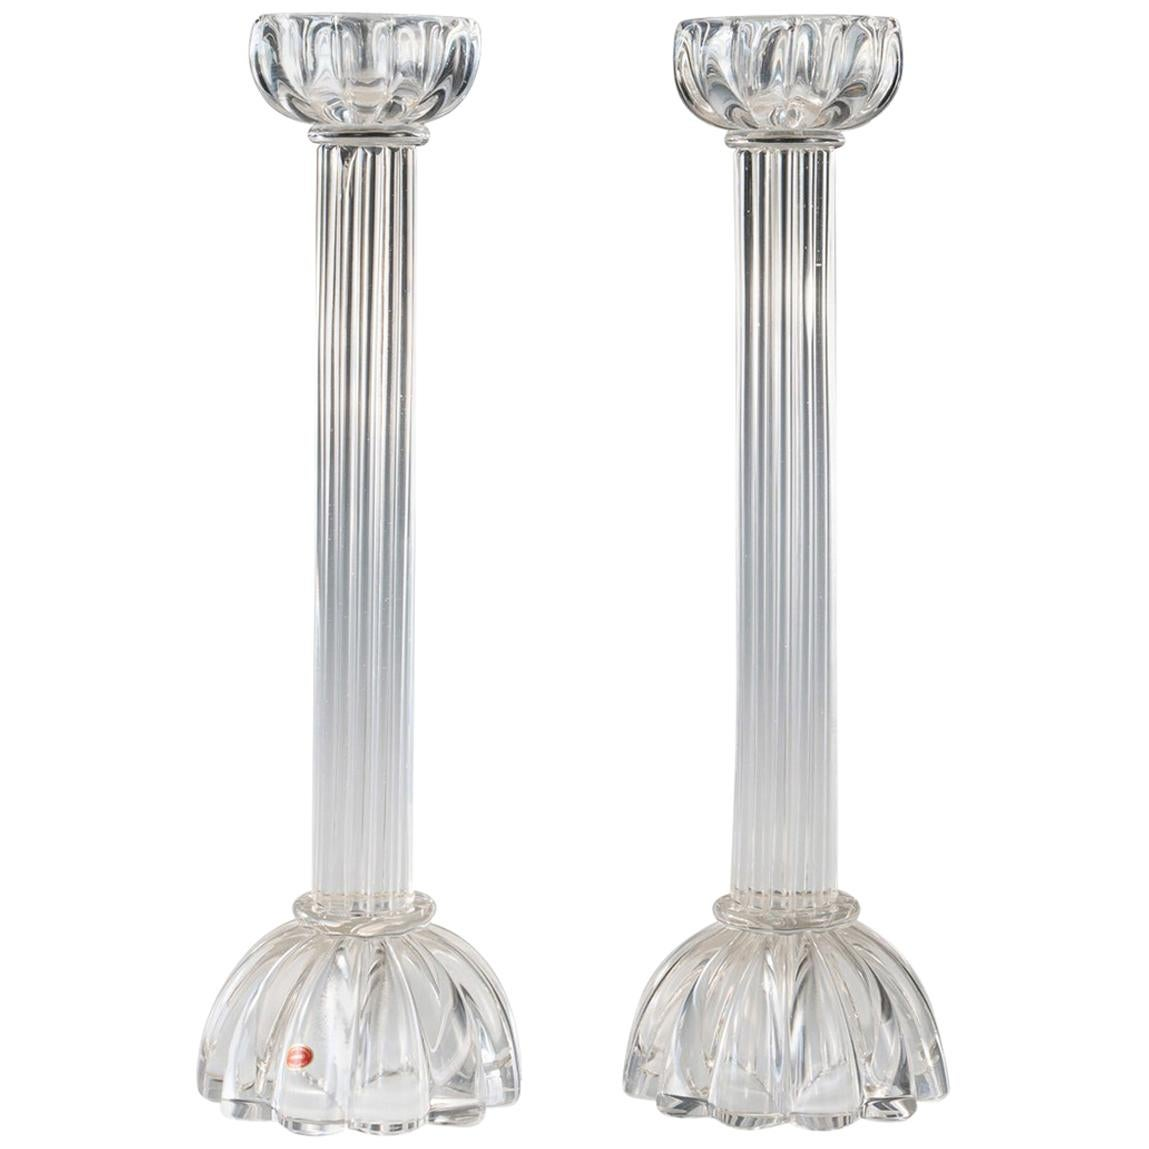 Archimede Seguso Candle Holders